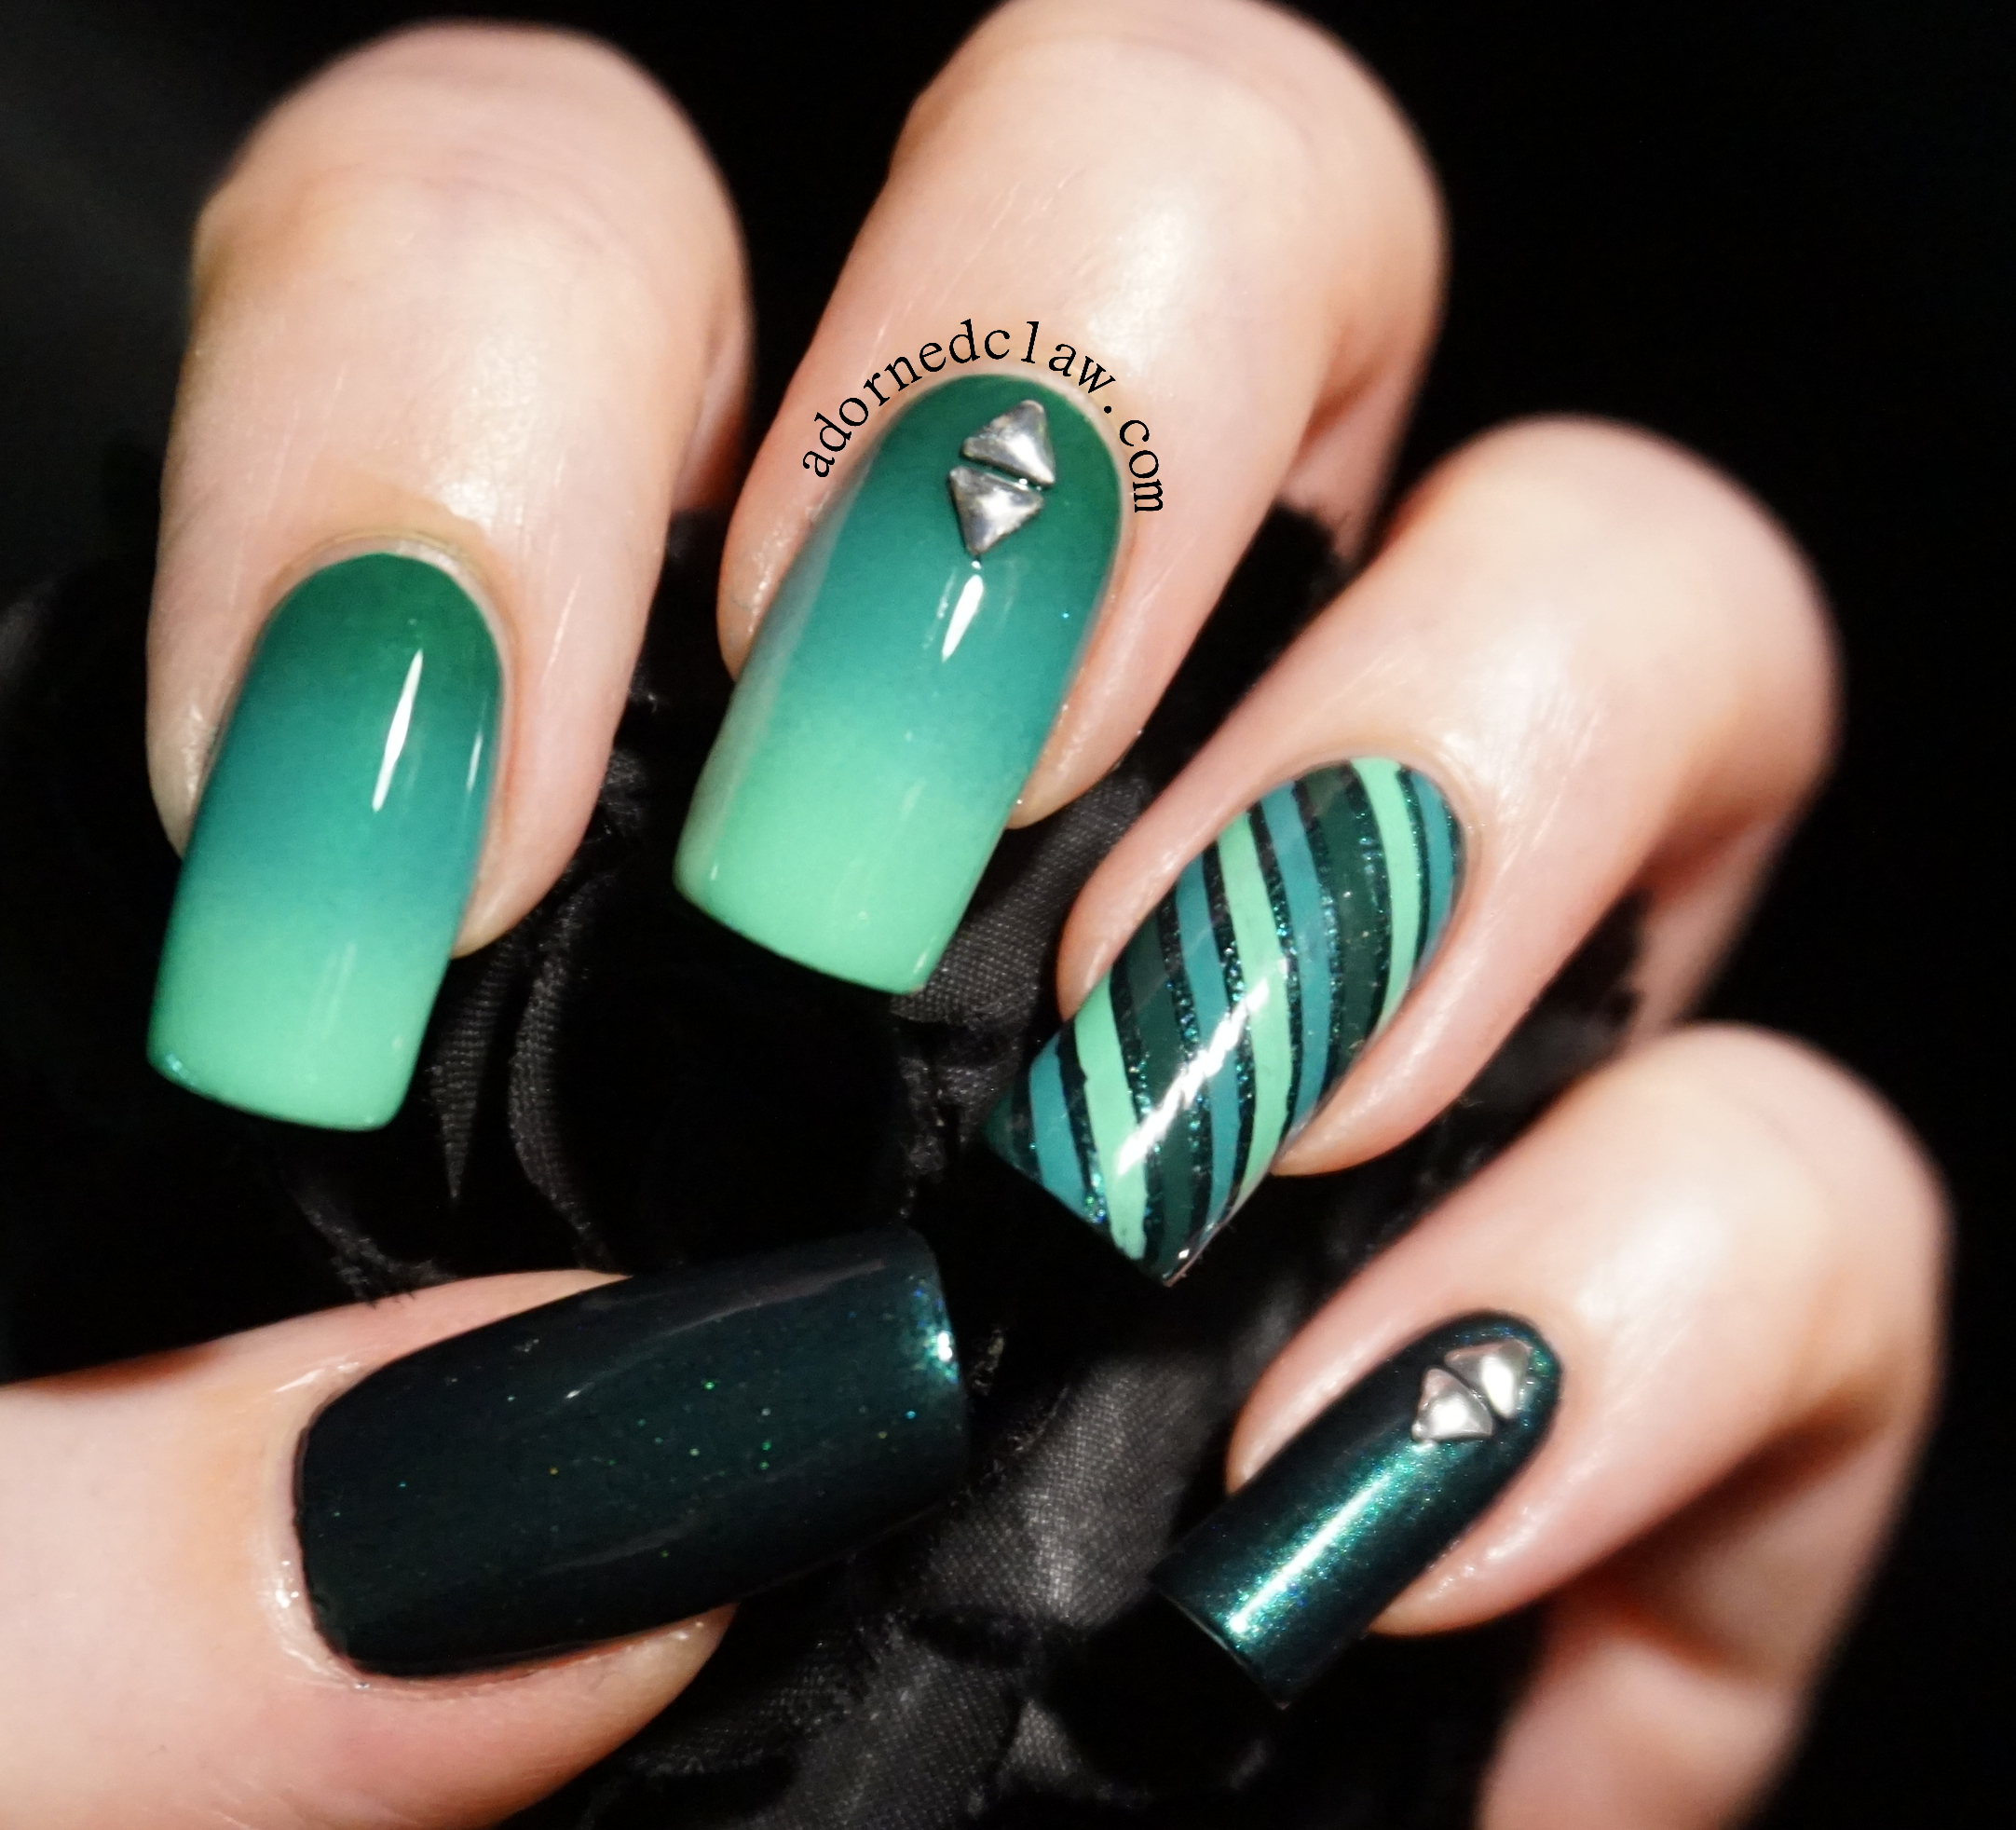 Gradient Nail Art: The Adorned Claw